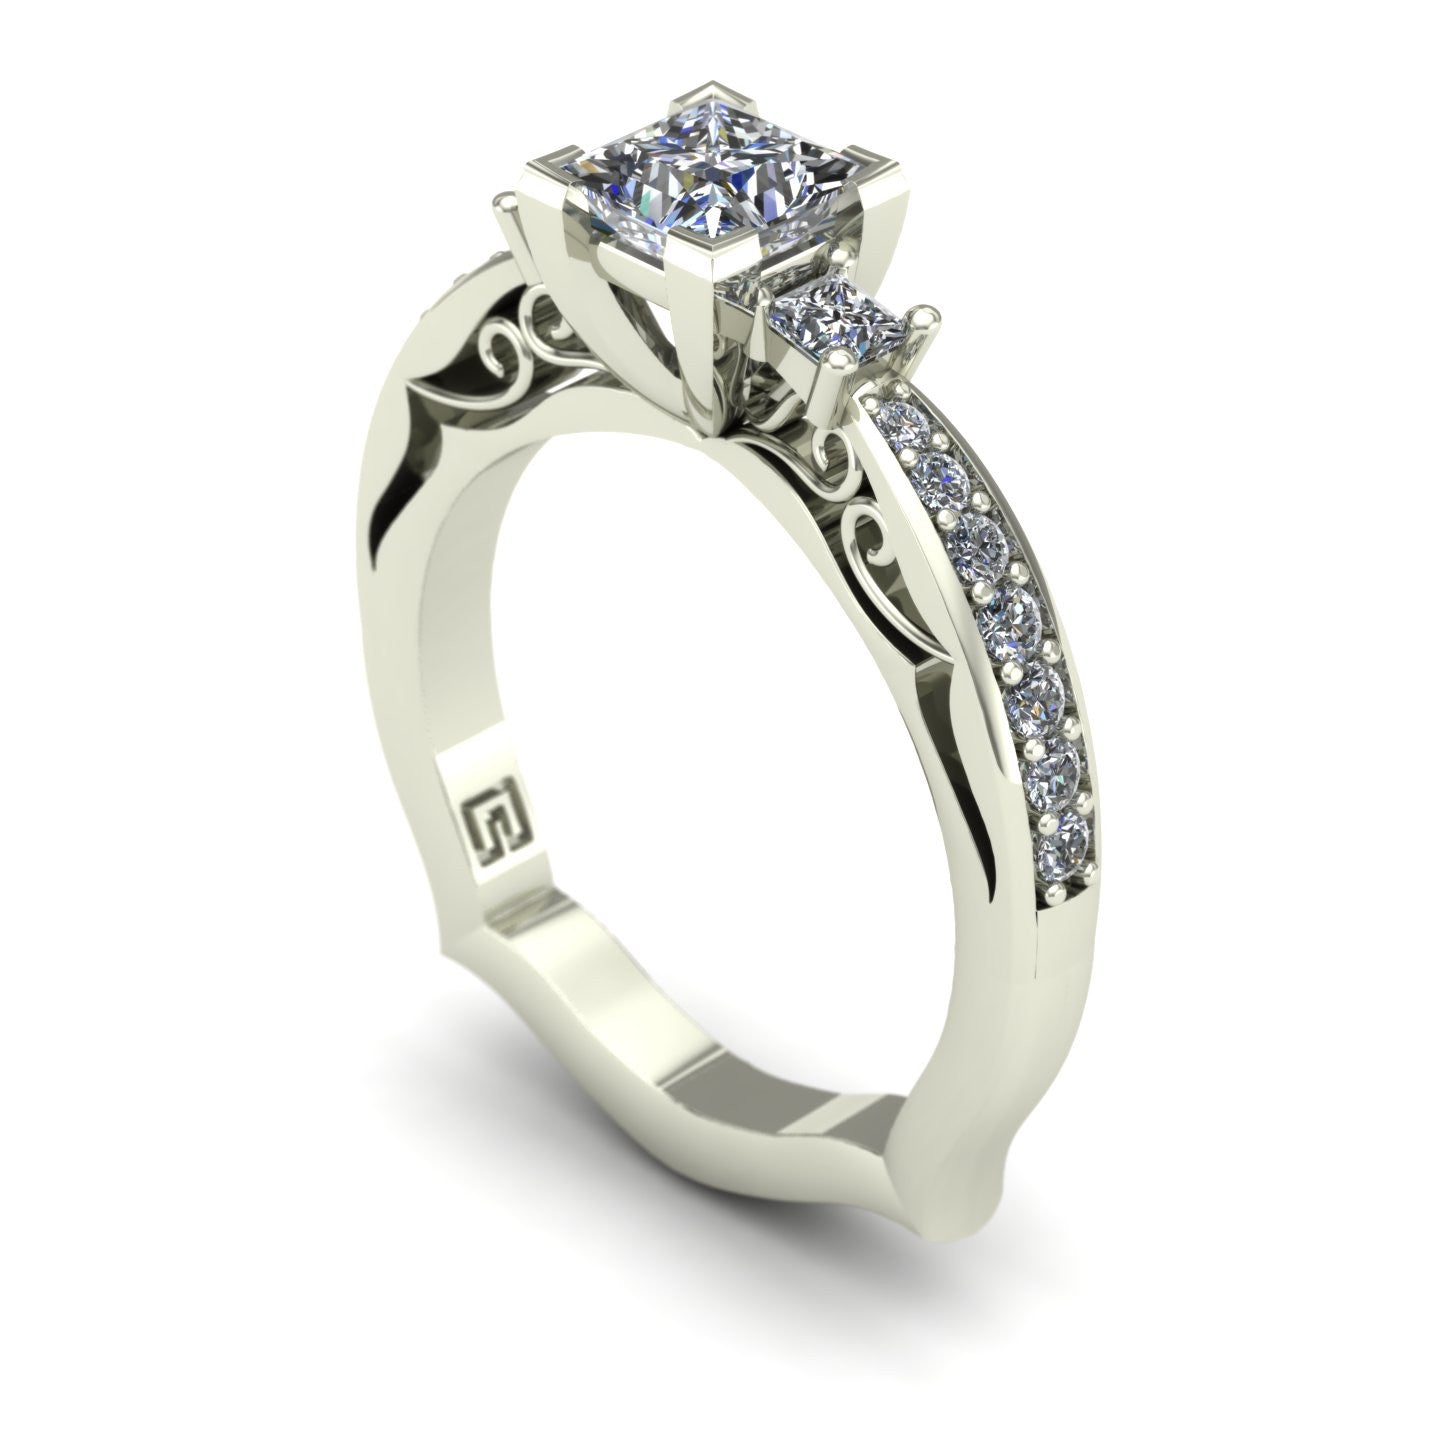 Princess diamond engagement ring in 14k white gold